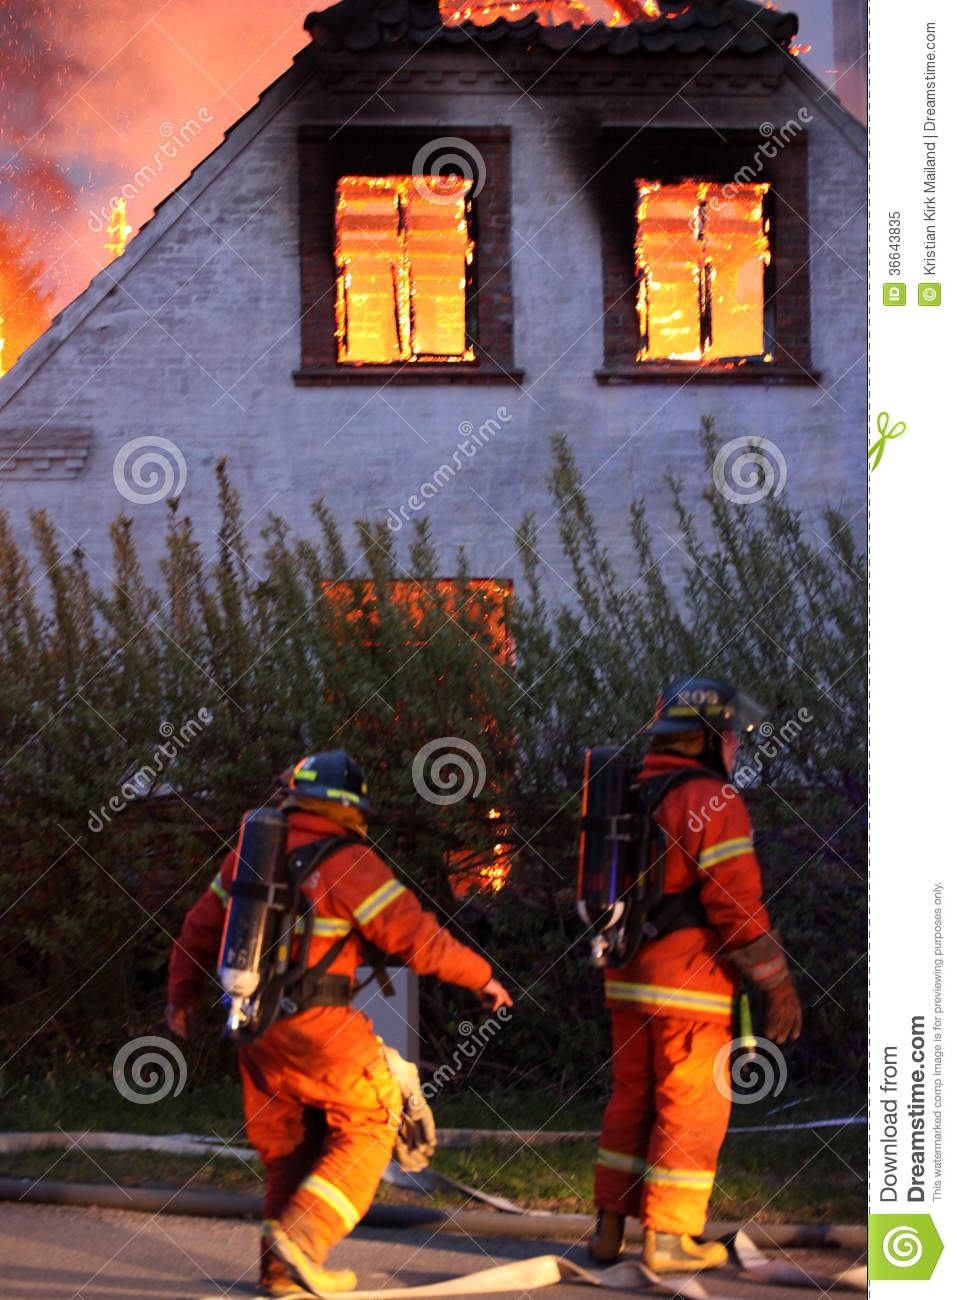 House burning and fire fighters